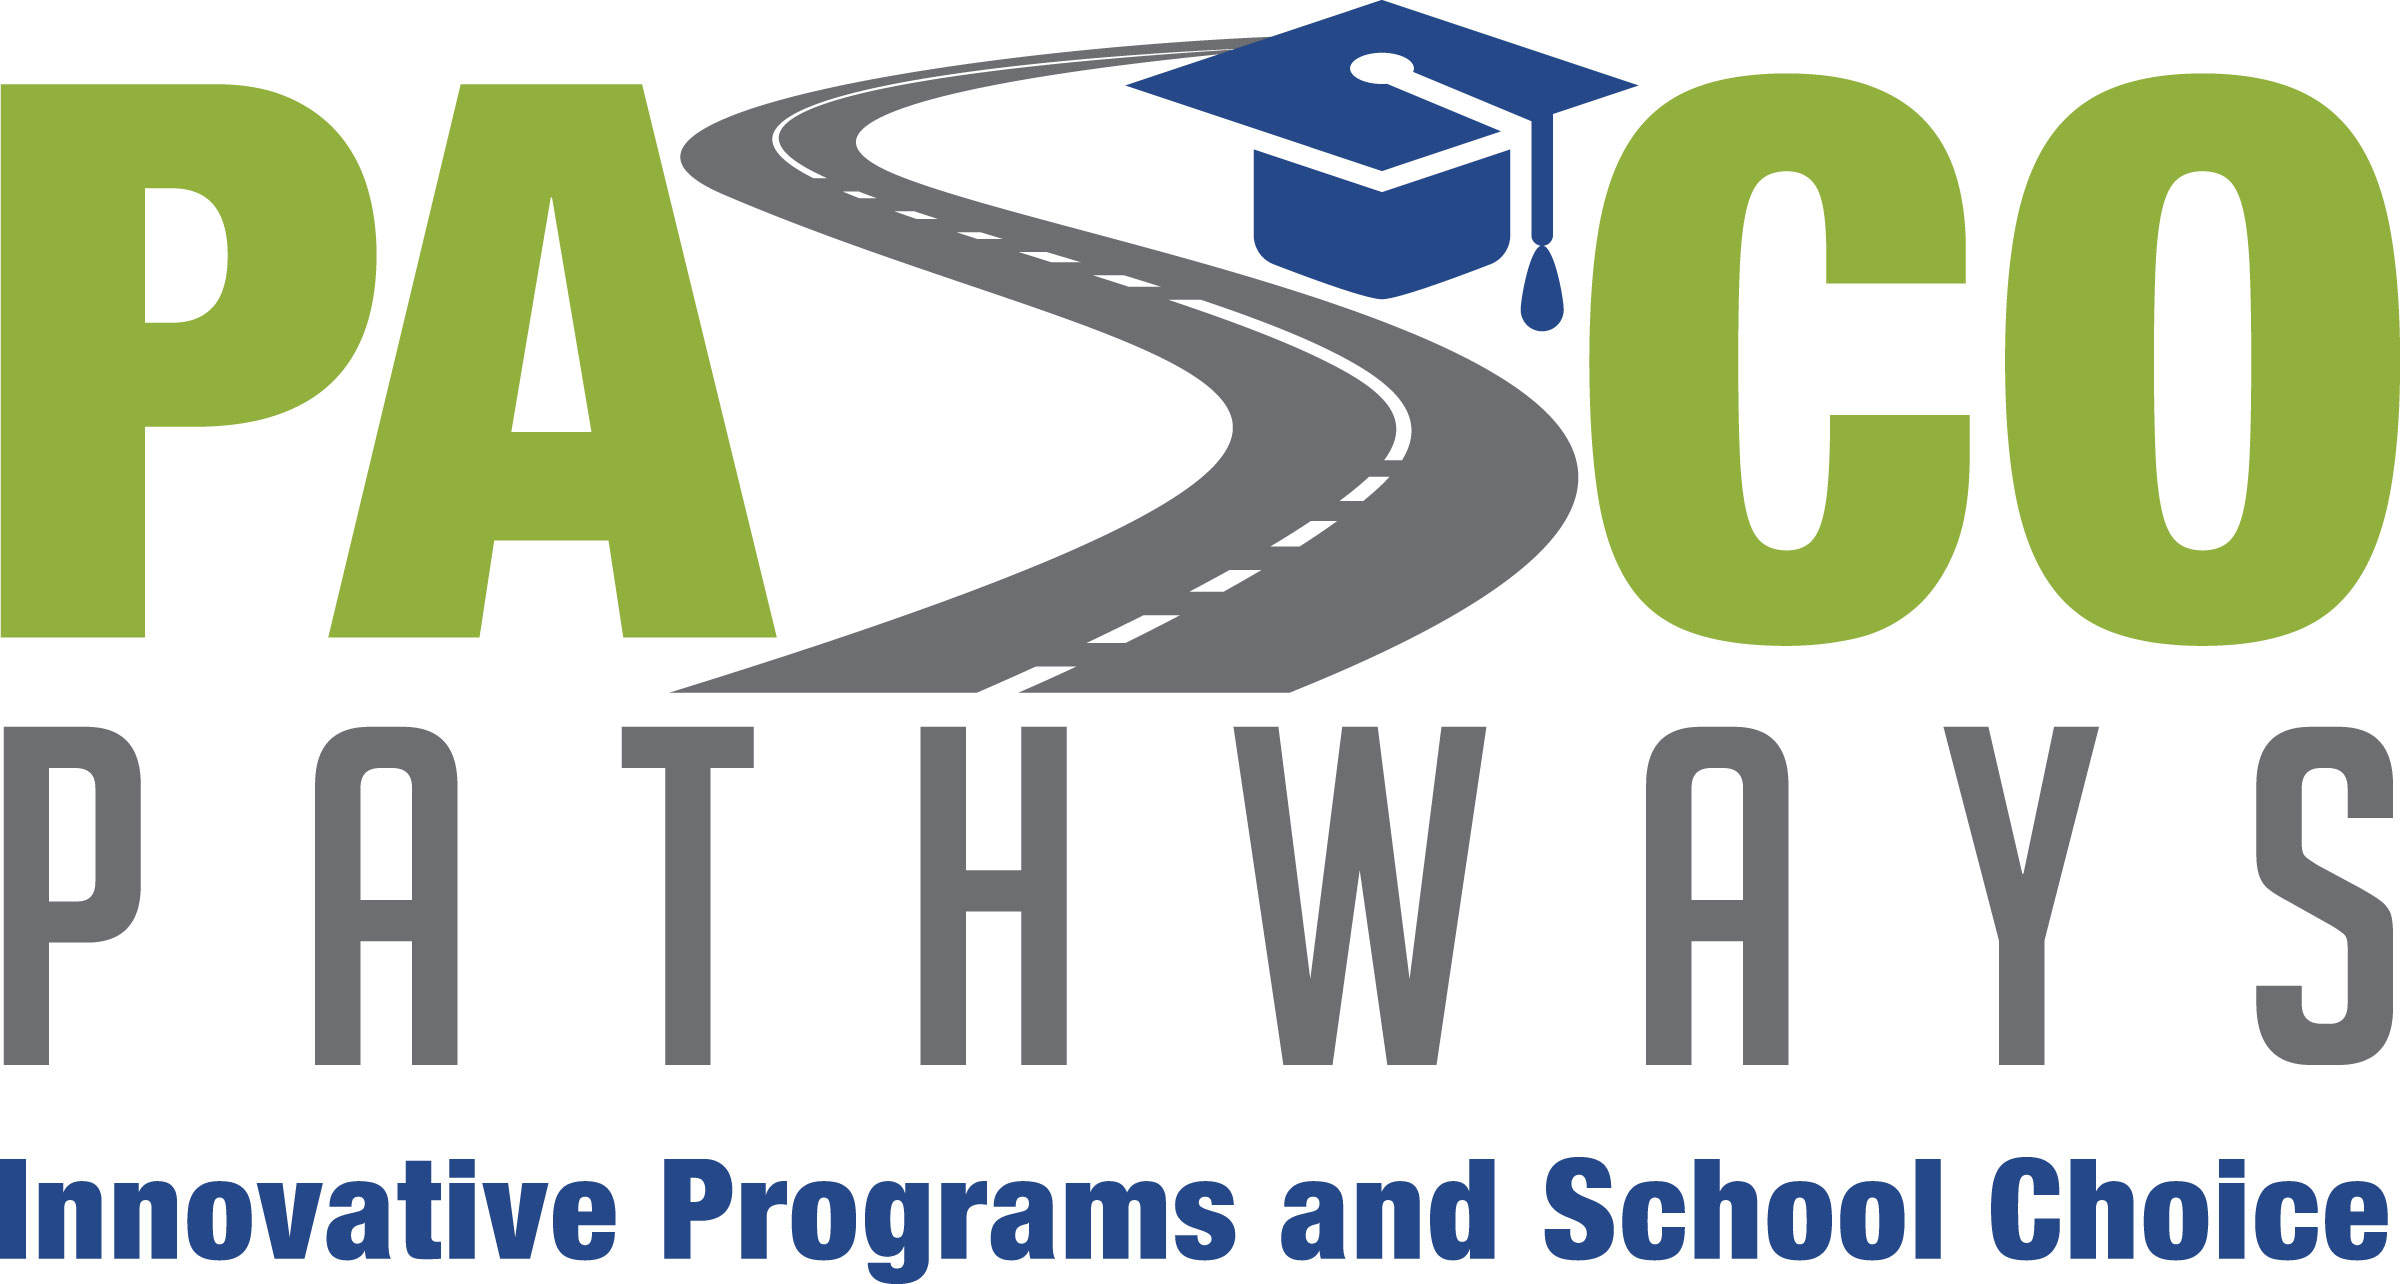 Pasco Pathways - Innovative Programs and School Choice logo